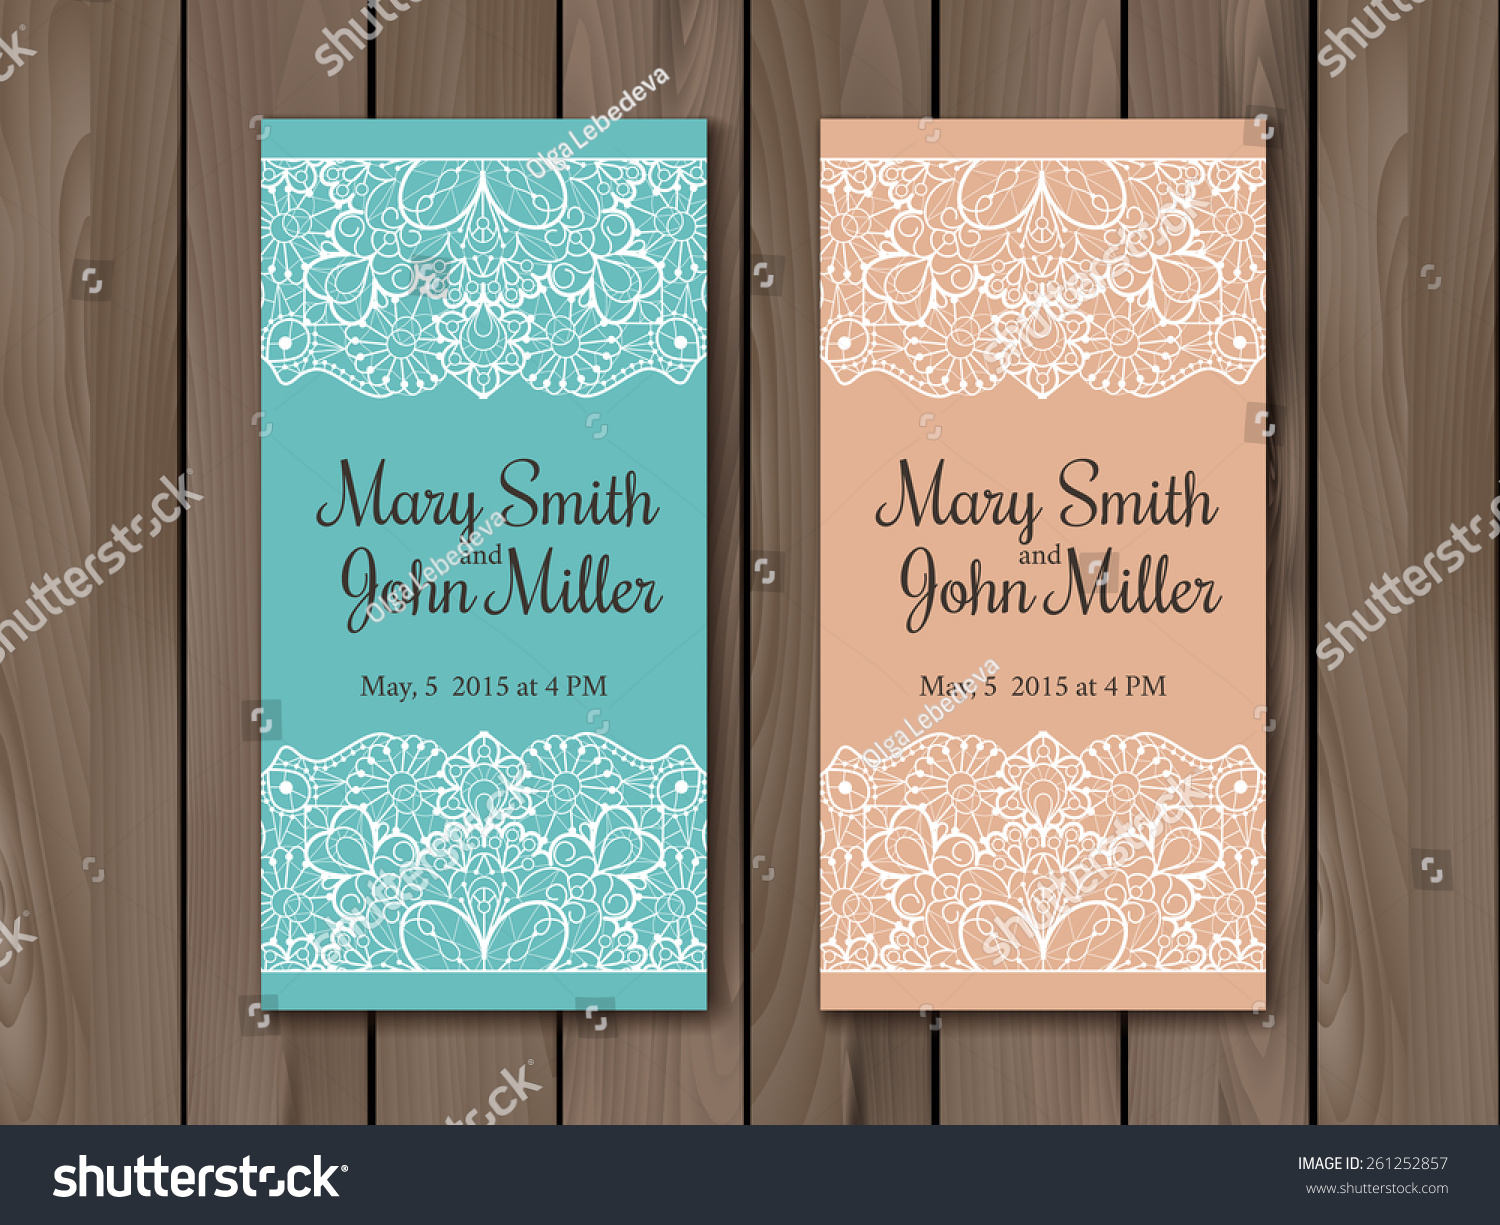 Free fonts used for wedding invitations